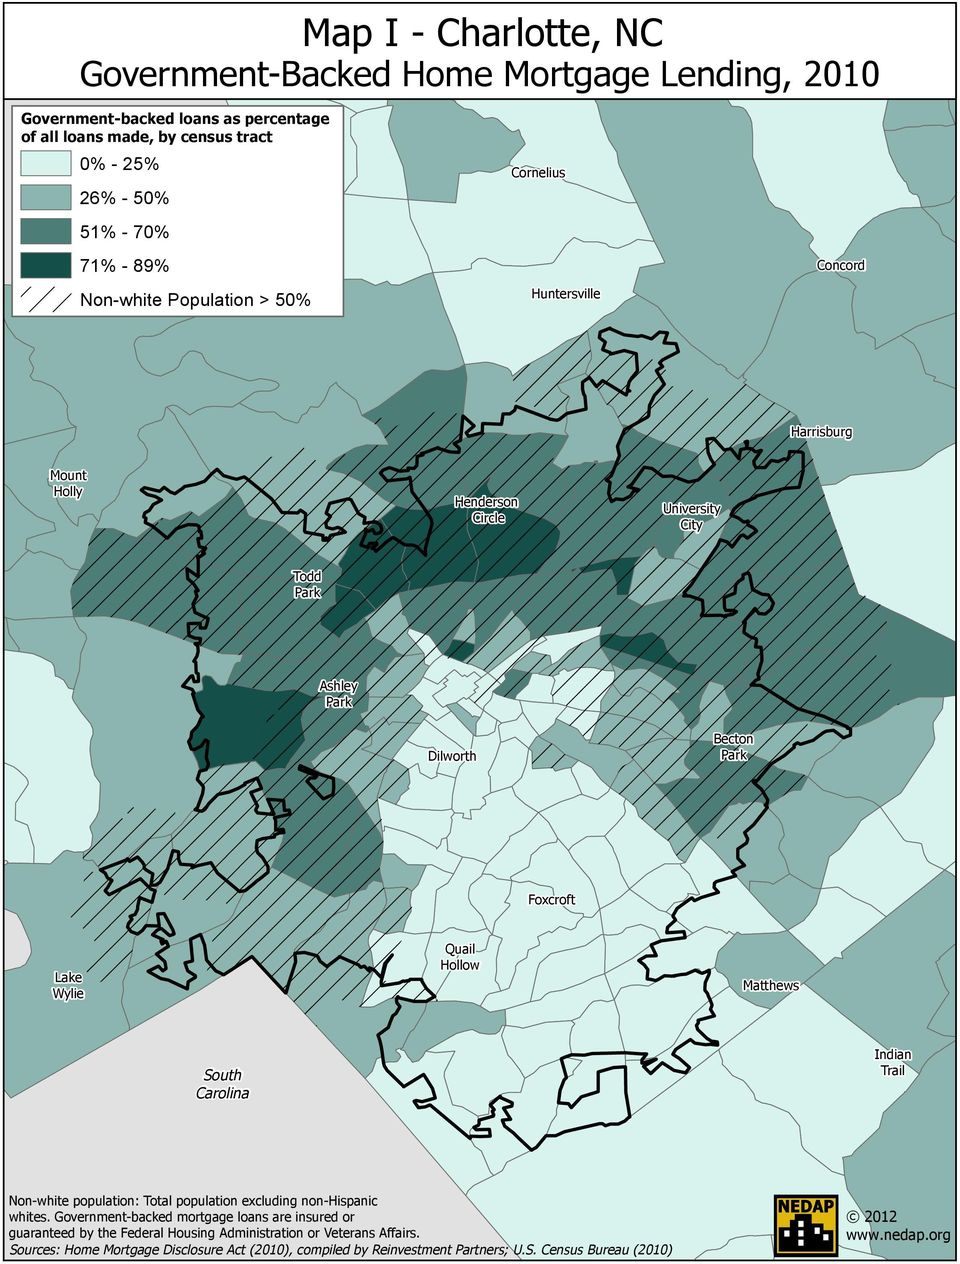 Quail Hollow Matthews South Carolina Indian Trail Non-white population: Total population excluding non-hispanic whites.